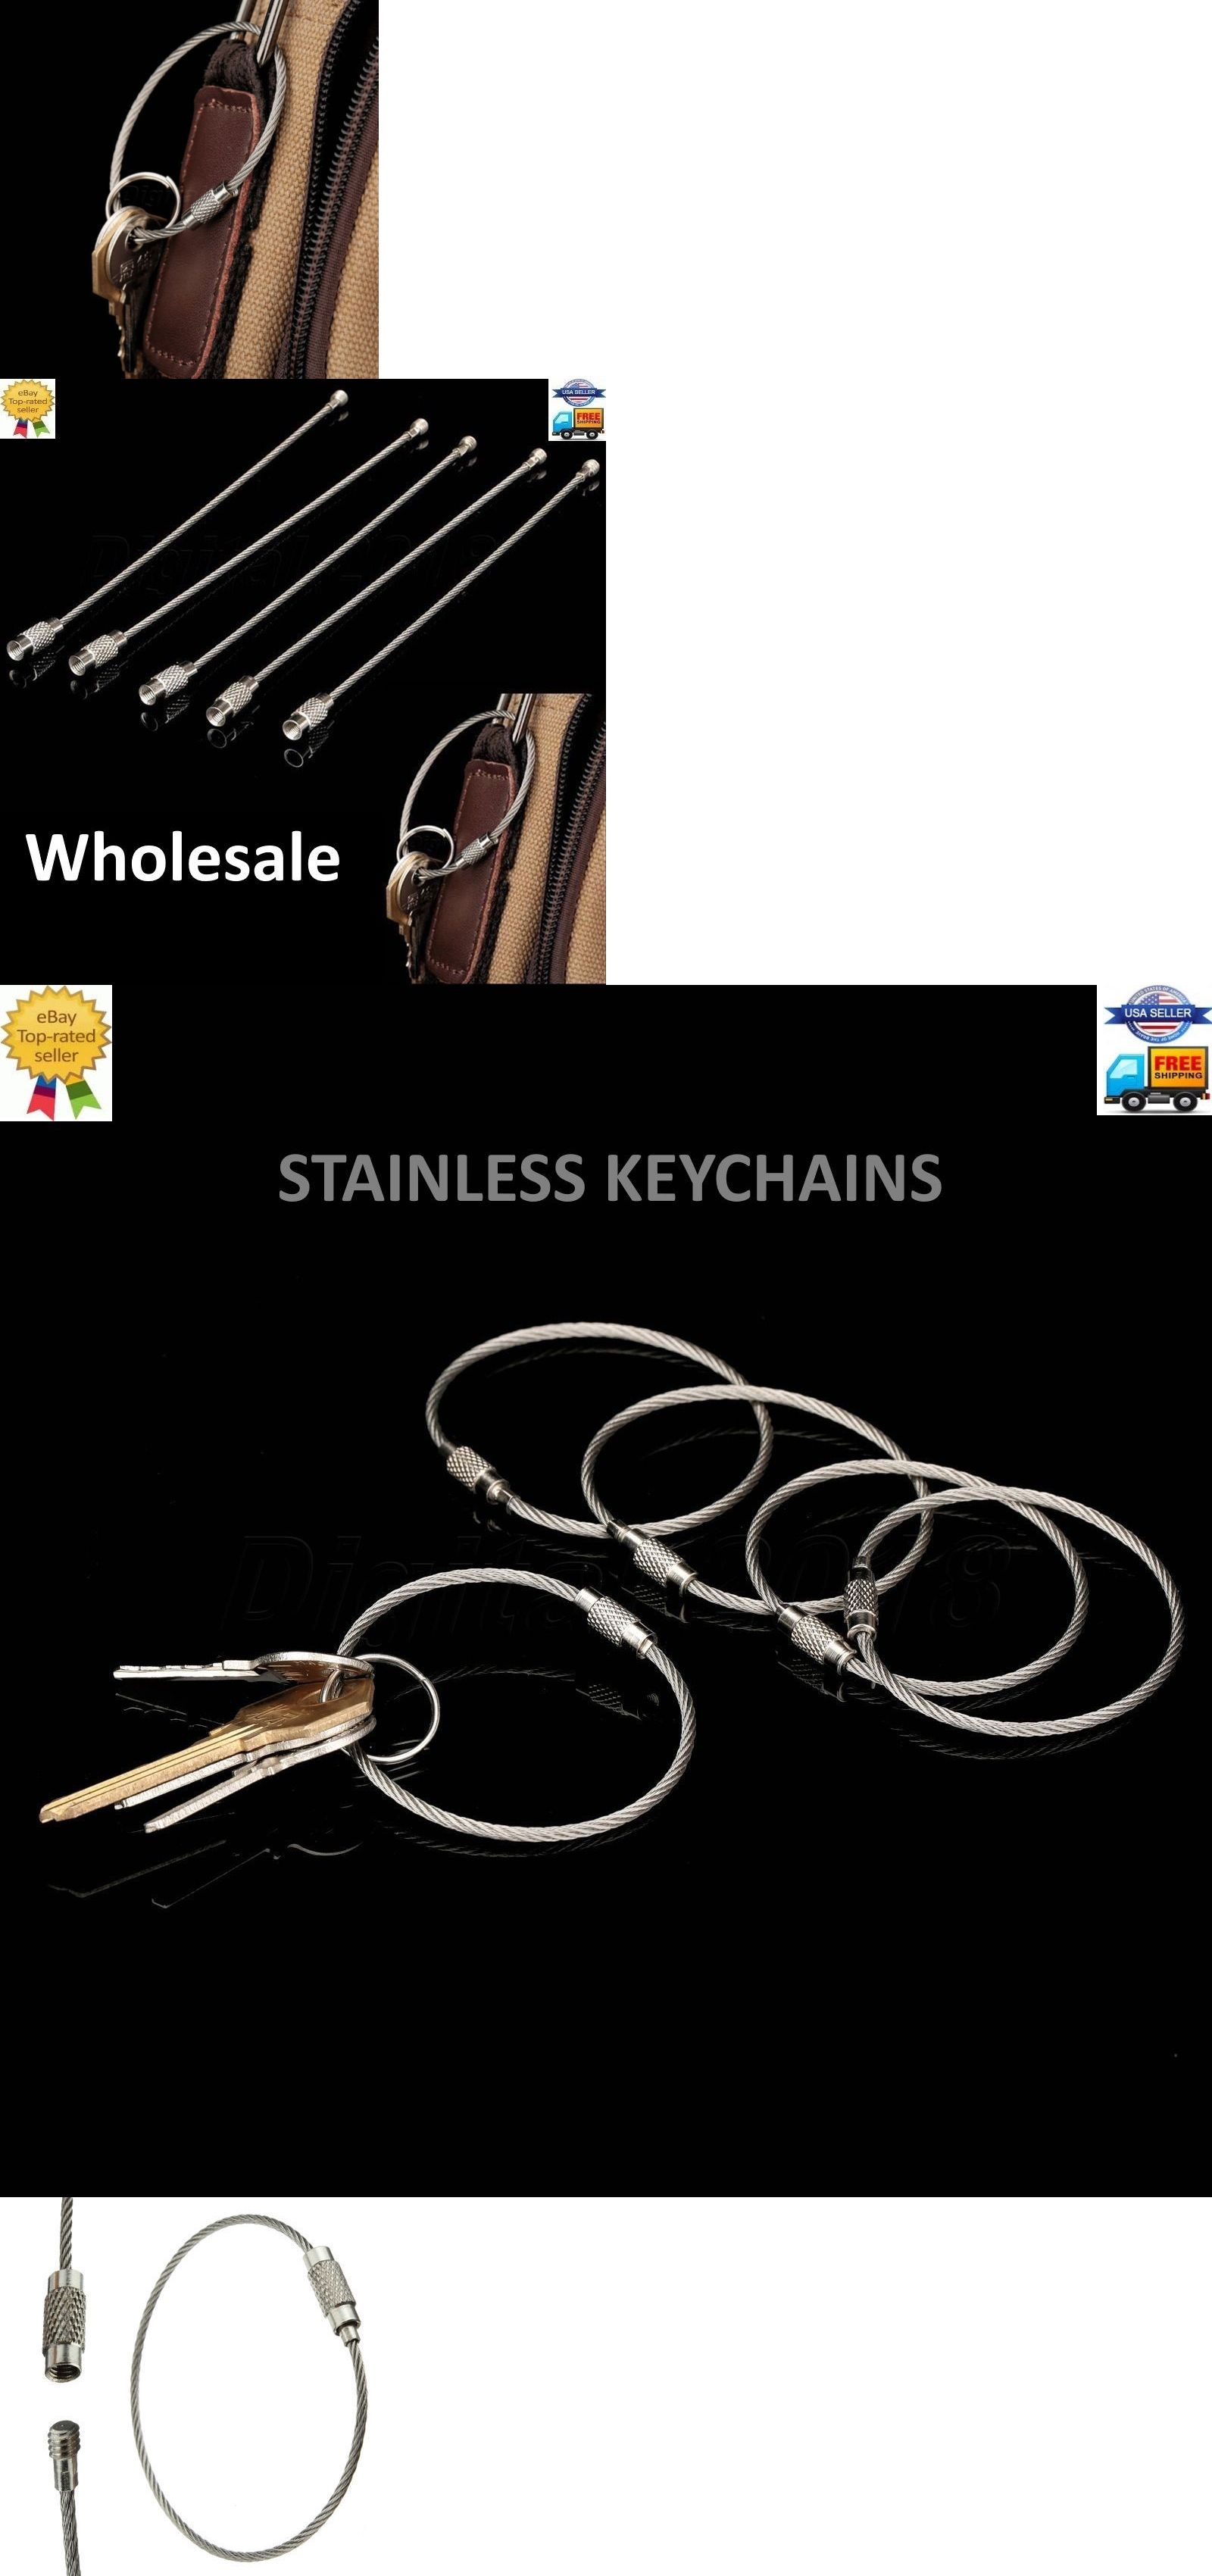 Key Chains 169280 Stainless Steel Wire Keychain Ring Braided Diagram Cable Screw Car Loop Outdoor